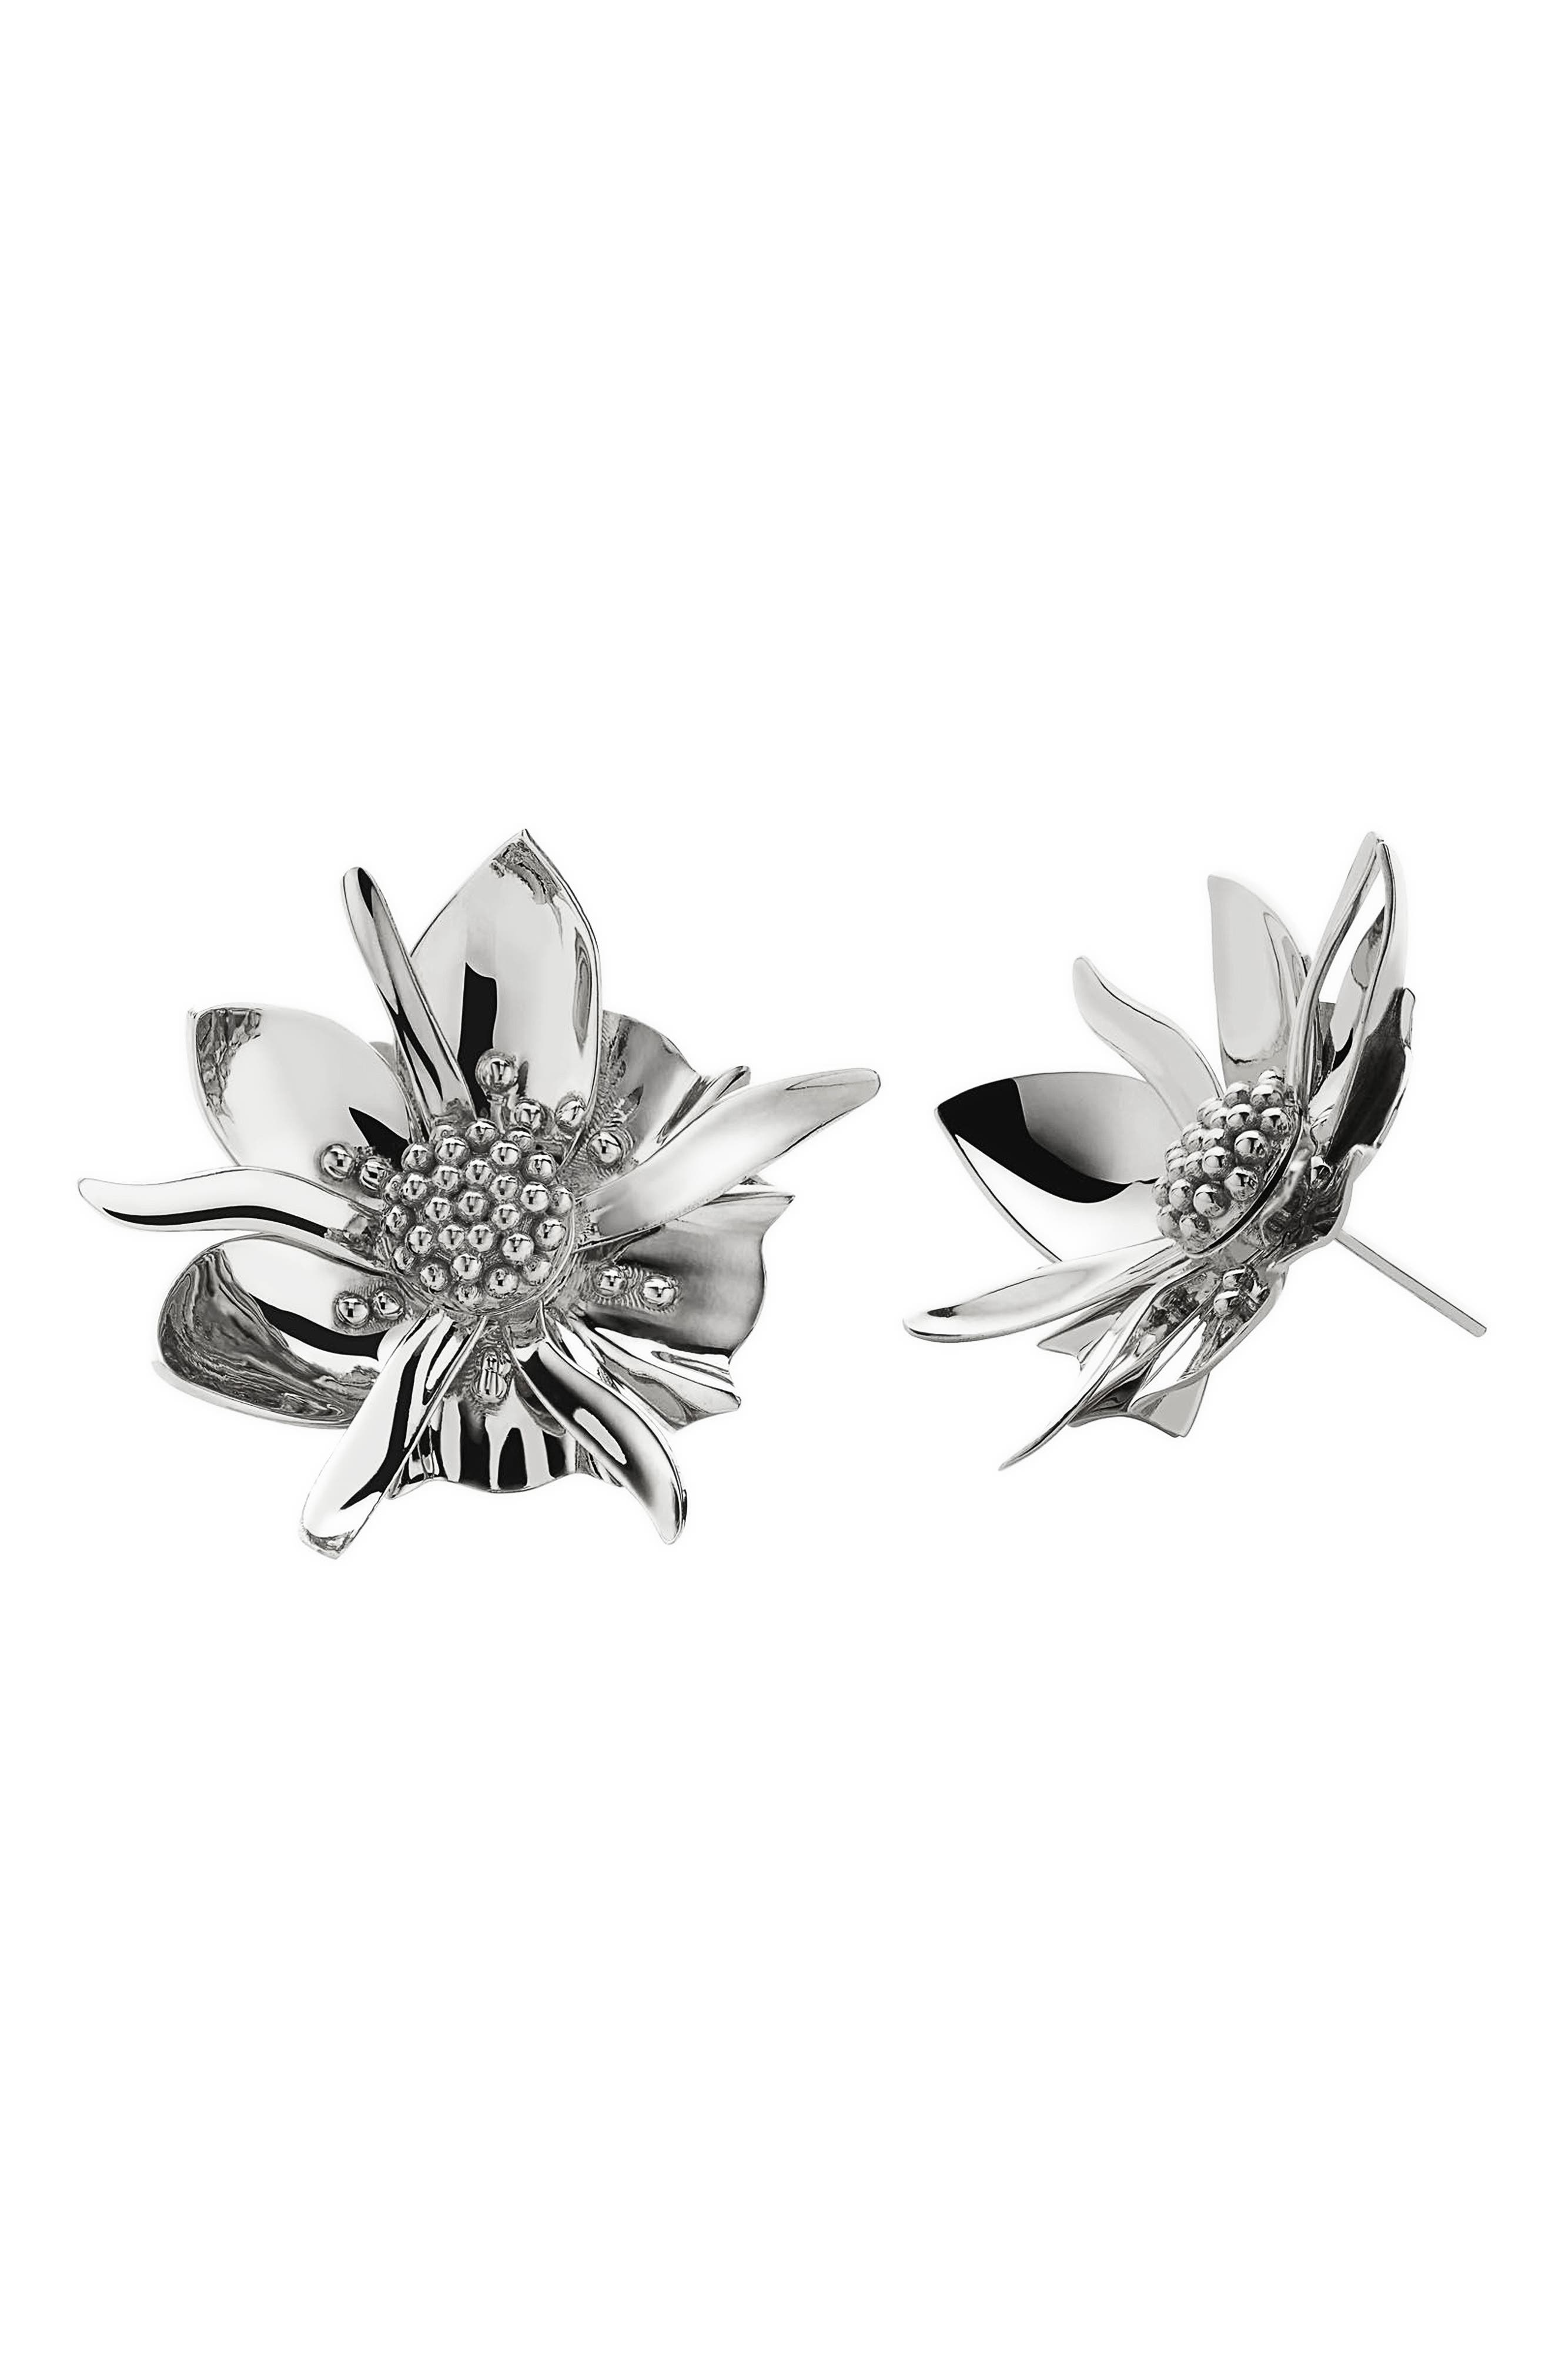 Large Wildflower Stud Earrings,                             Main thumbnail 1, color,                             Sterling Silver